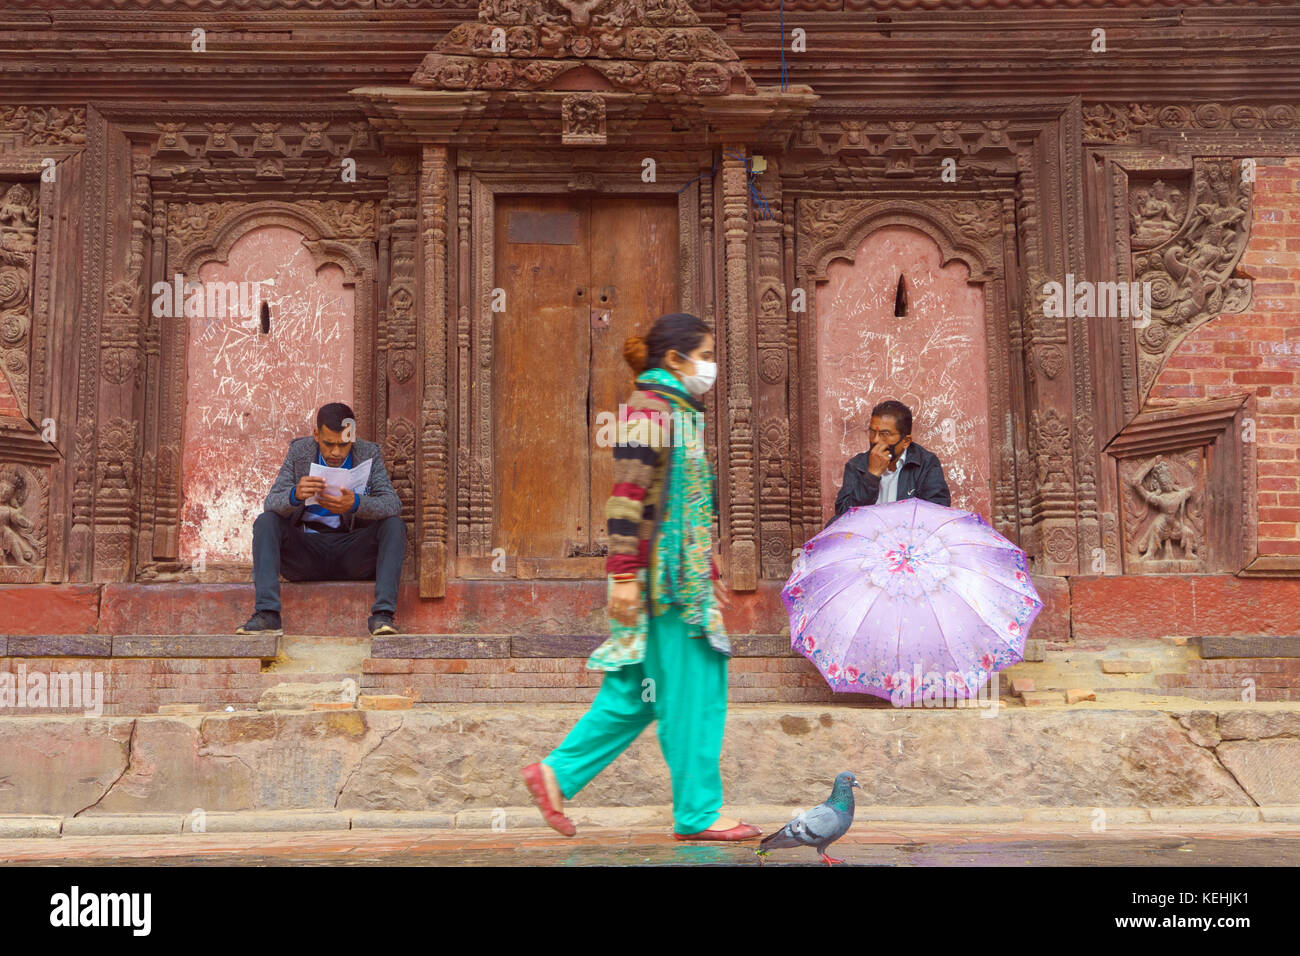 People at Jagannath temple, Durbar square, Kathmandu. - Stock Image